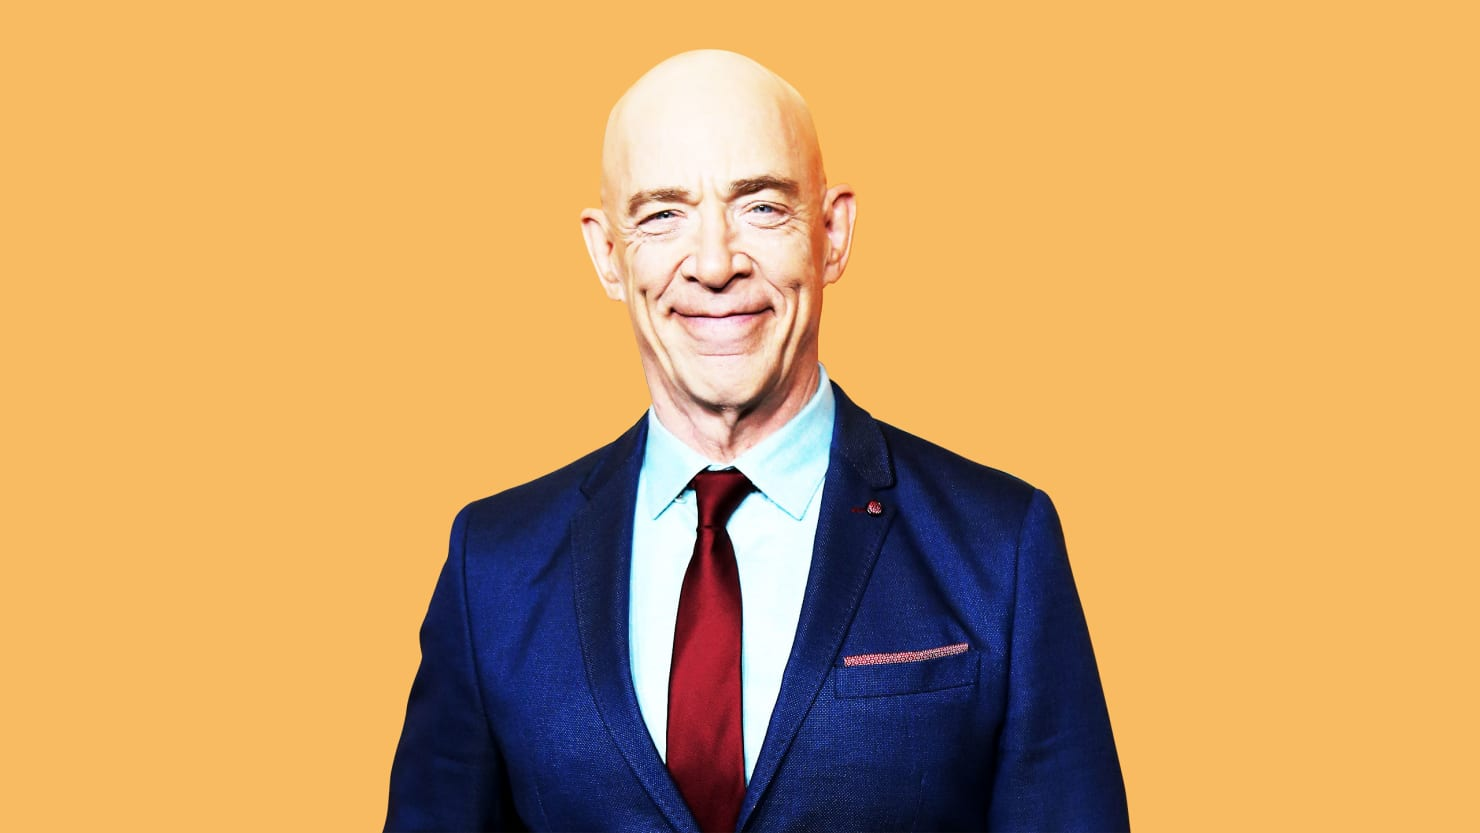 J.K. Simmons on 'Counterpart' Season 2 and the 'Crushing' Moment That Changed His Life